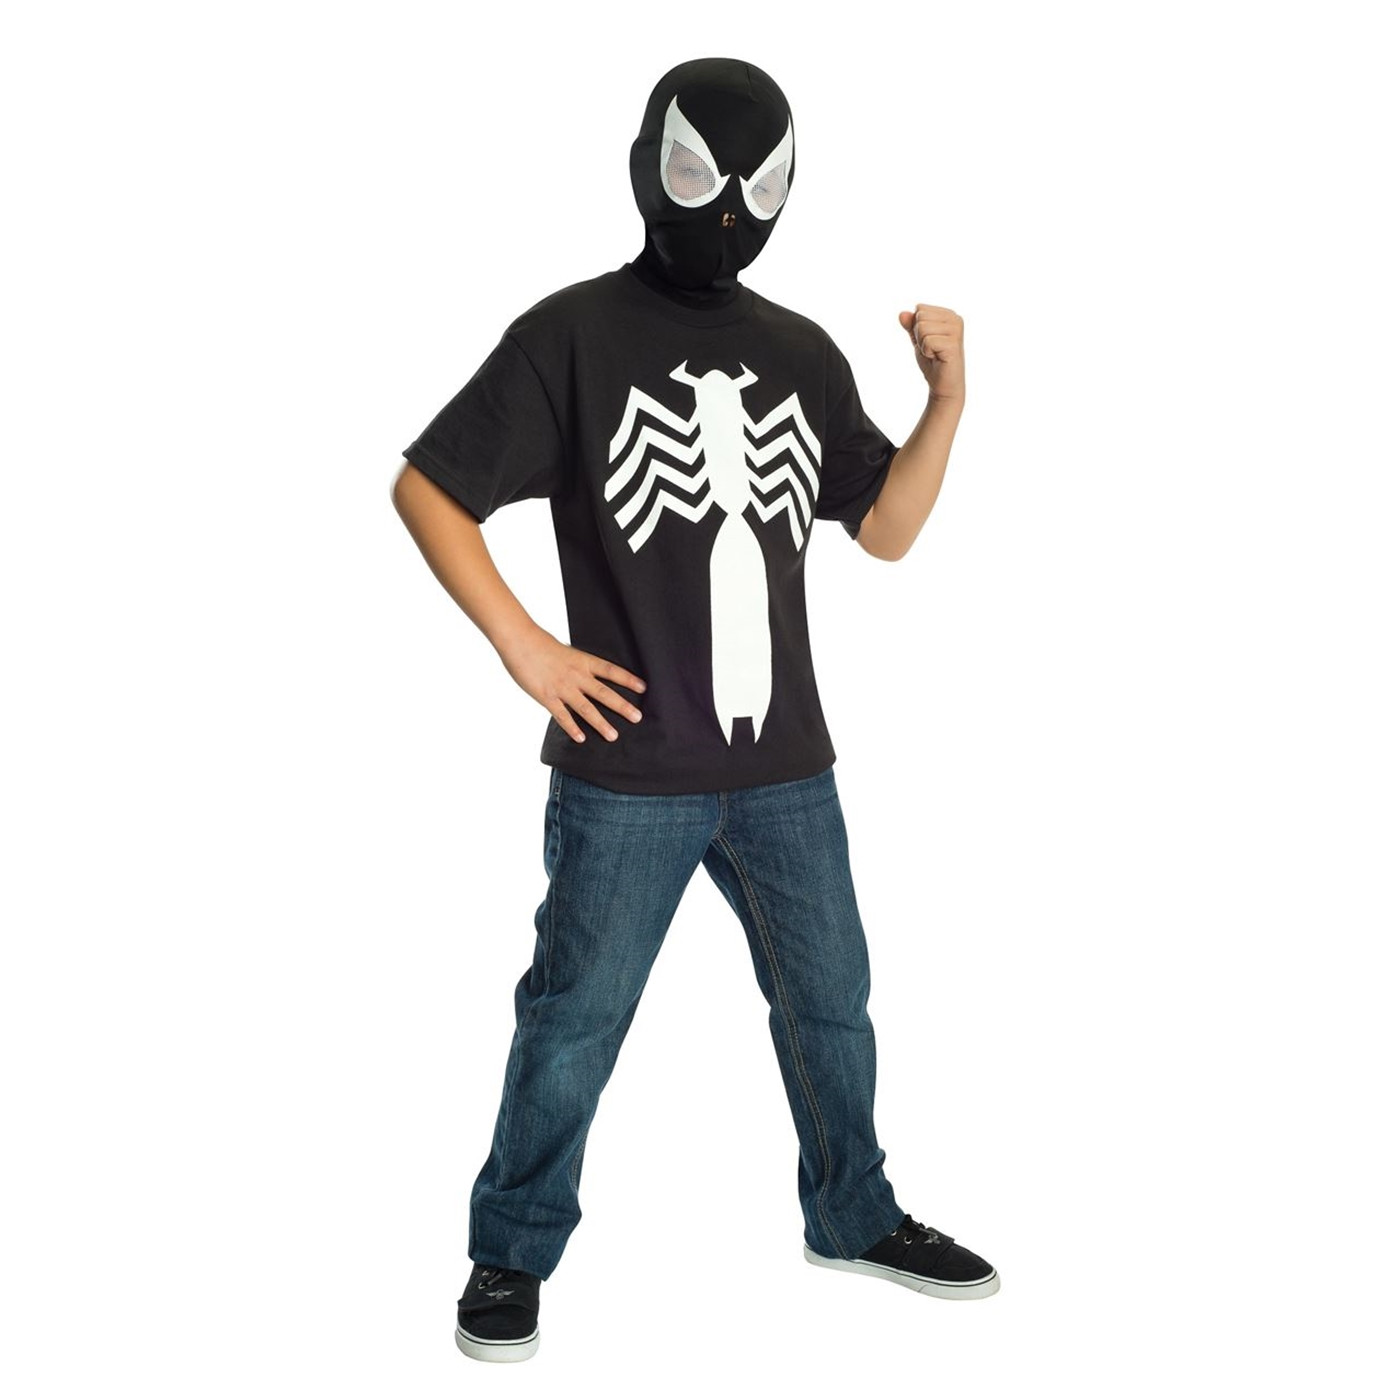 Spider-Man Black Costume Youth T-Shirt with Mask